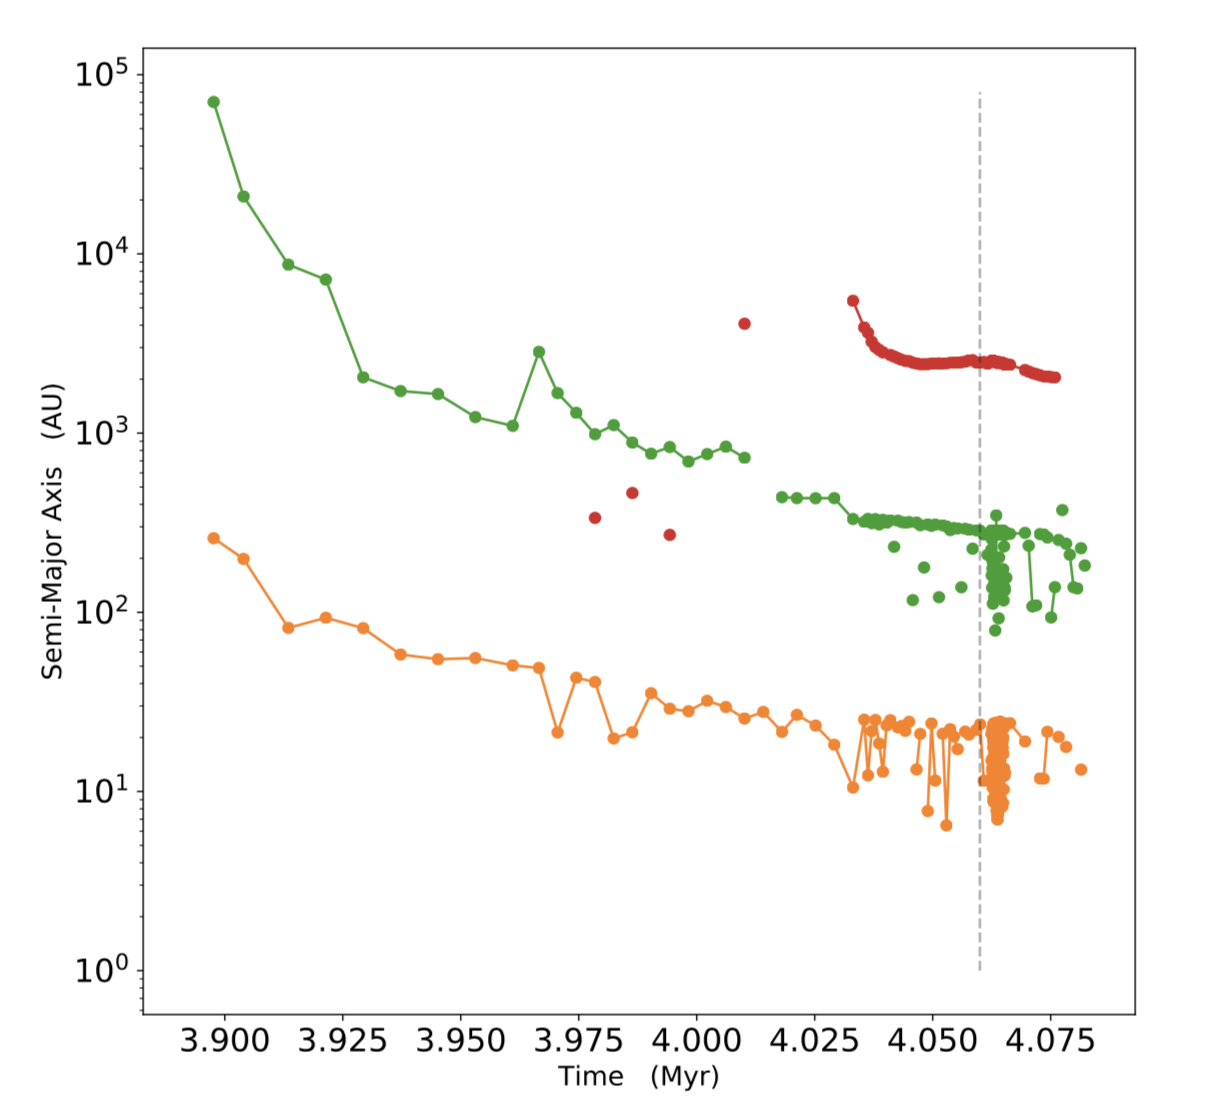 Evolution of the separations in this quadruple system. The orange curve shows the semi-major axis for the inner-most two stars. Those stars are bound to a third member: the average separation in that triple system is shown as the green curve. Those three stars capture a fourth particle on a large orbit; it's average distance from the triple system is shown as the red curve. Eventually this system has a close encounter with a large fifth star, which disrupts the system. That interaction begins at the vertical dashed line.